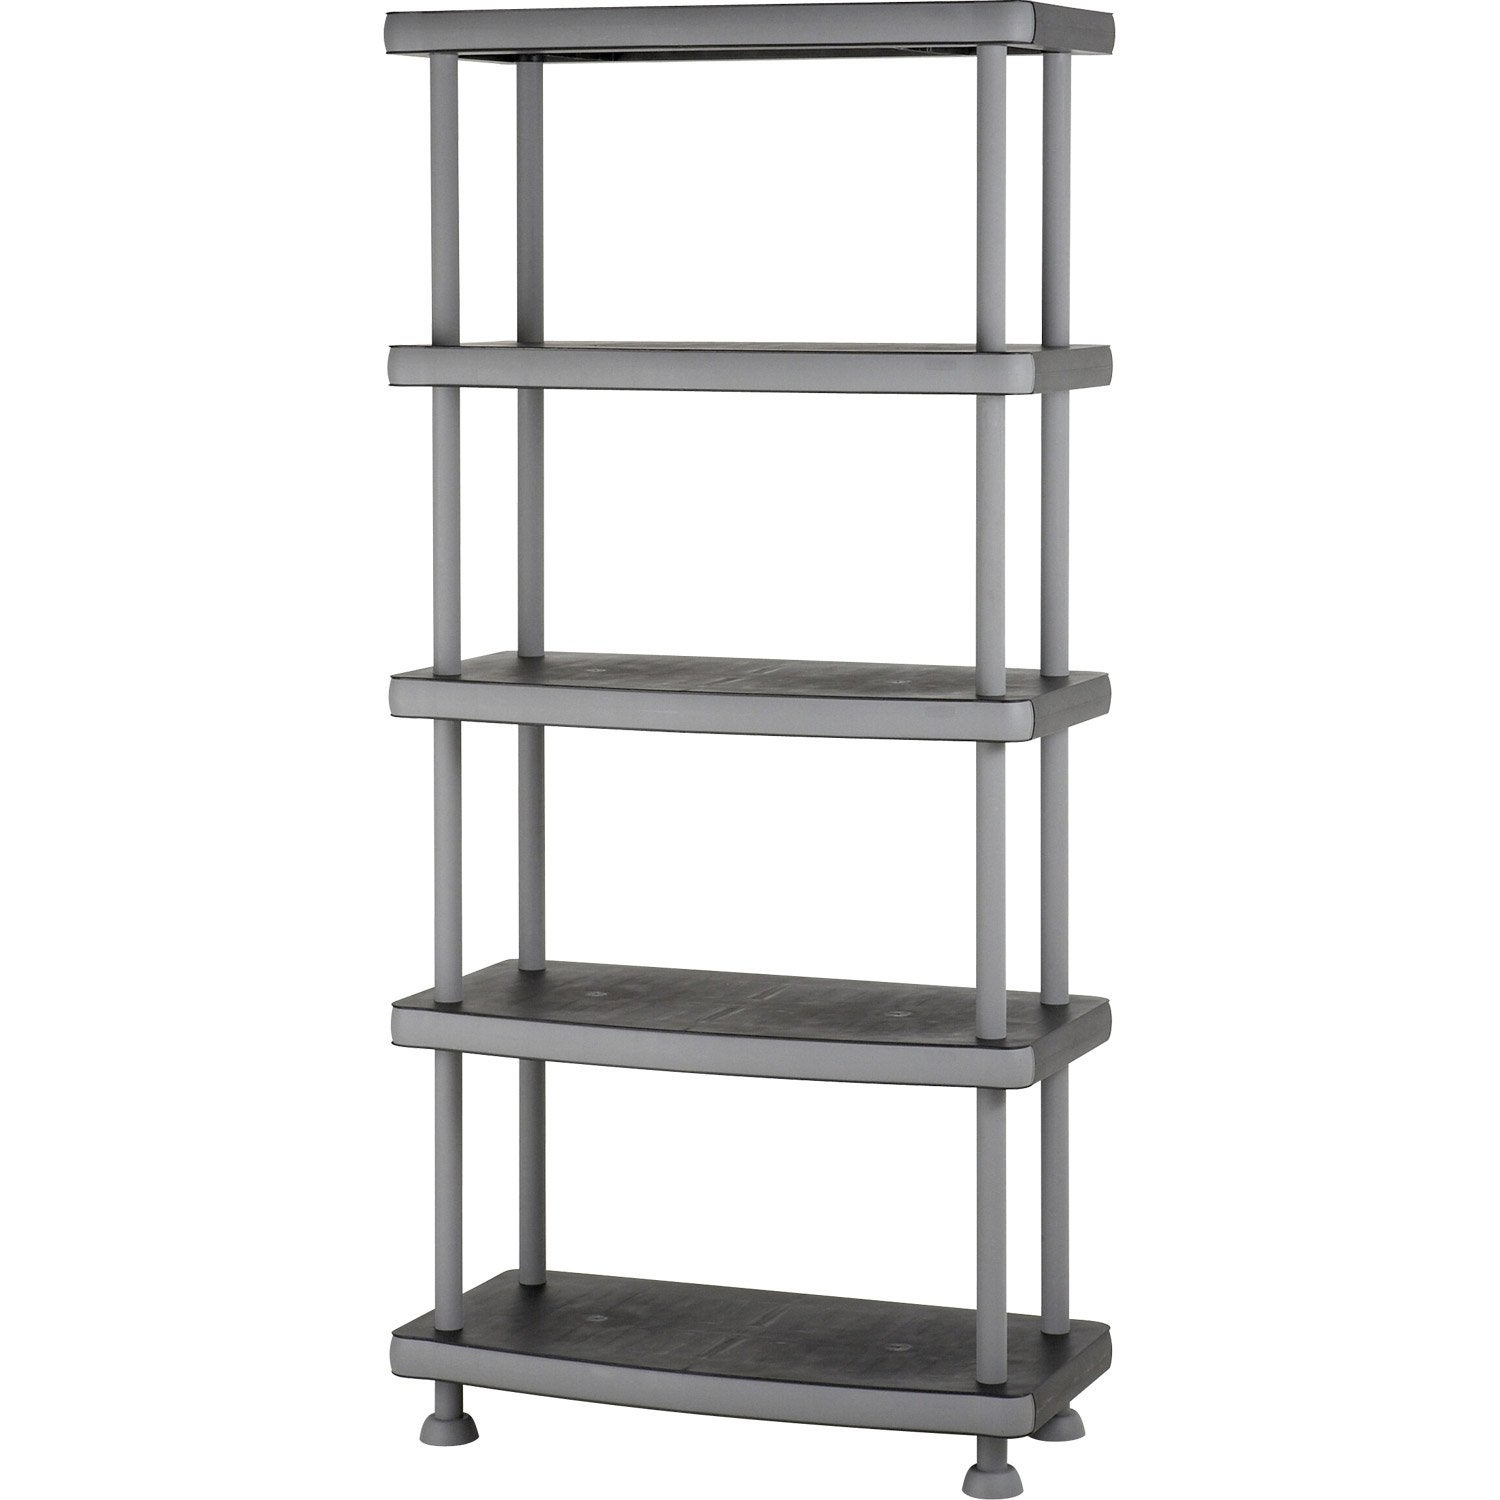 Etag re r sine 5 tablettes noir l90xh185xp45 cm leroy - Etagere modulable leroy merlin ...